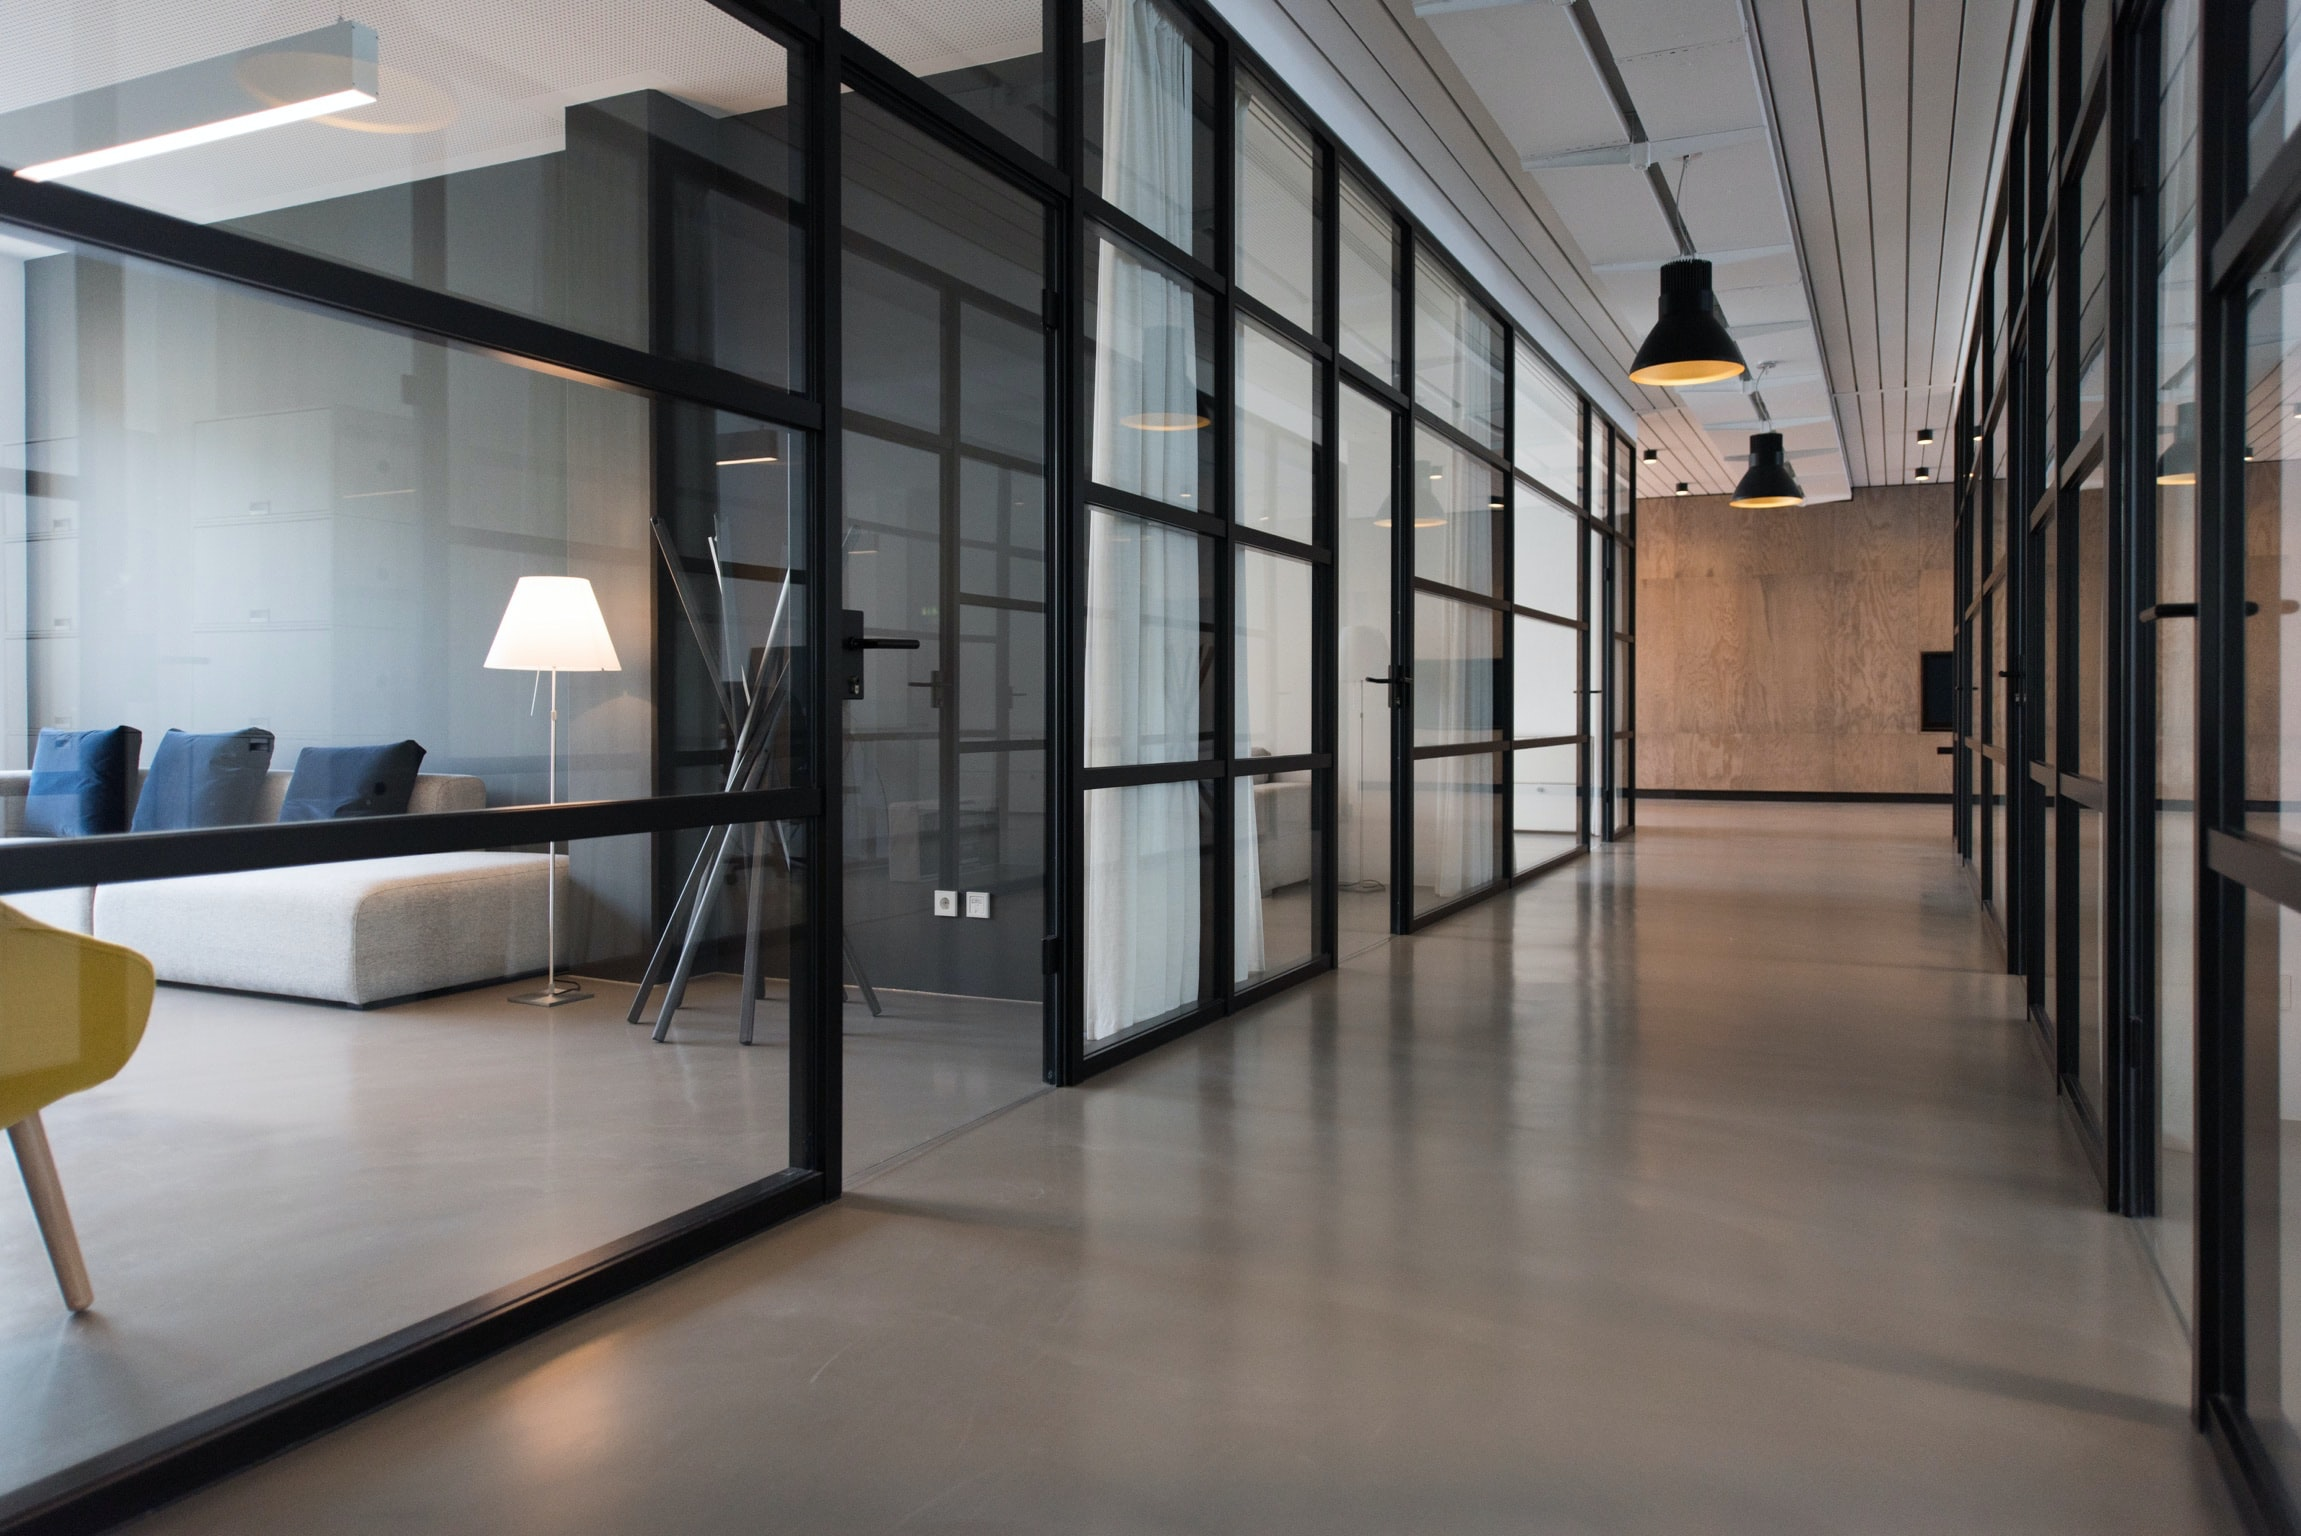 hallway between glass-panel doors